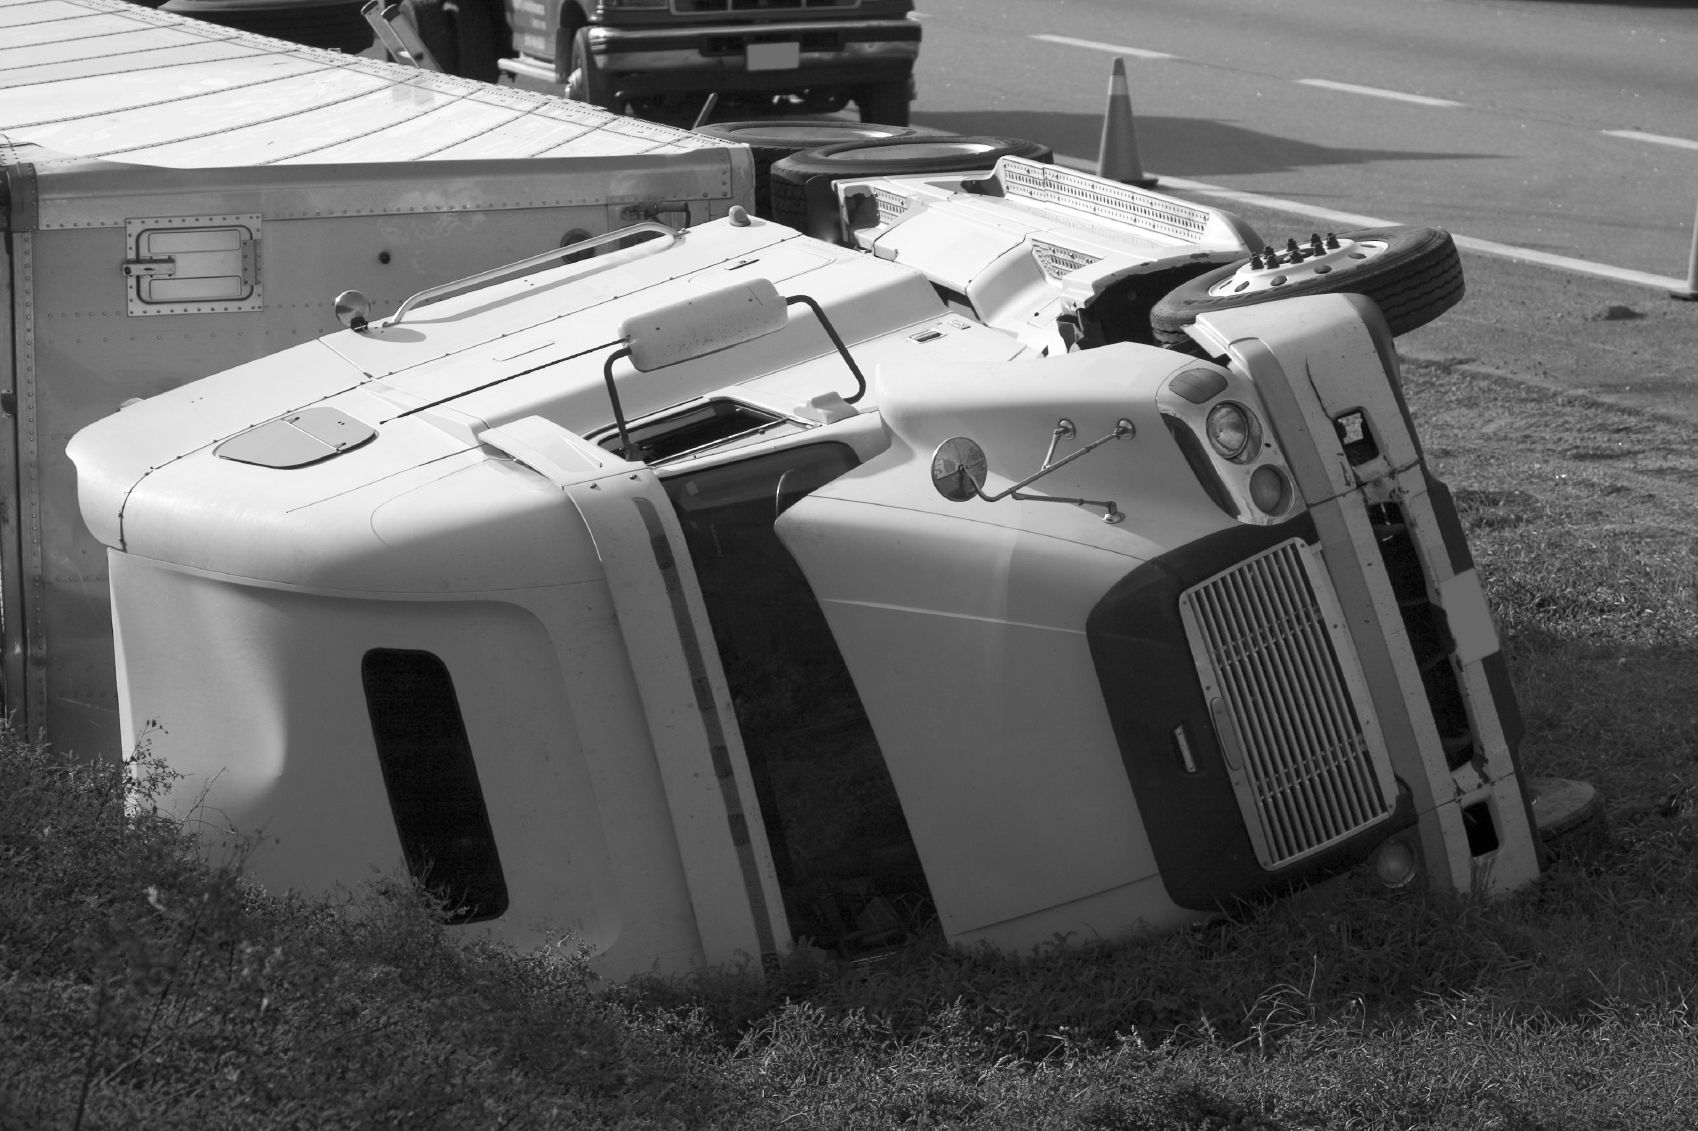 A rollover large truck accident